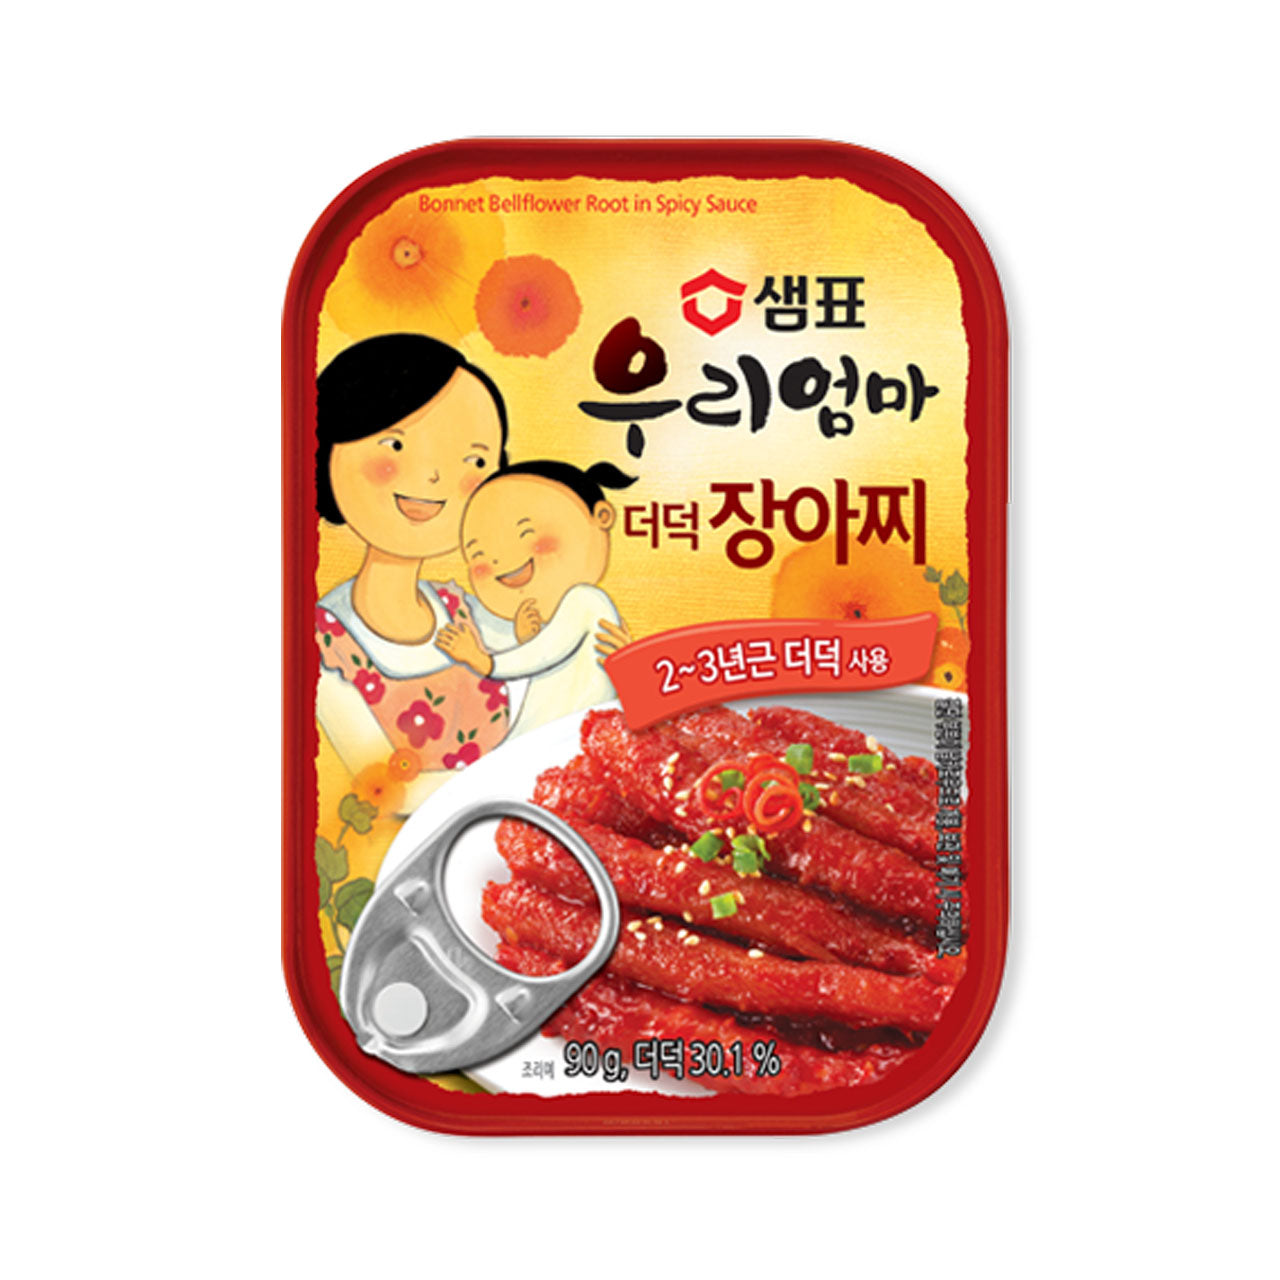 샘표 우리엄마 더덕 장아찌 (Sempio Bonnet Bellflower Root in Spicy Sauce) - 90g